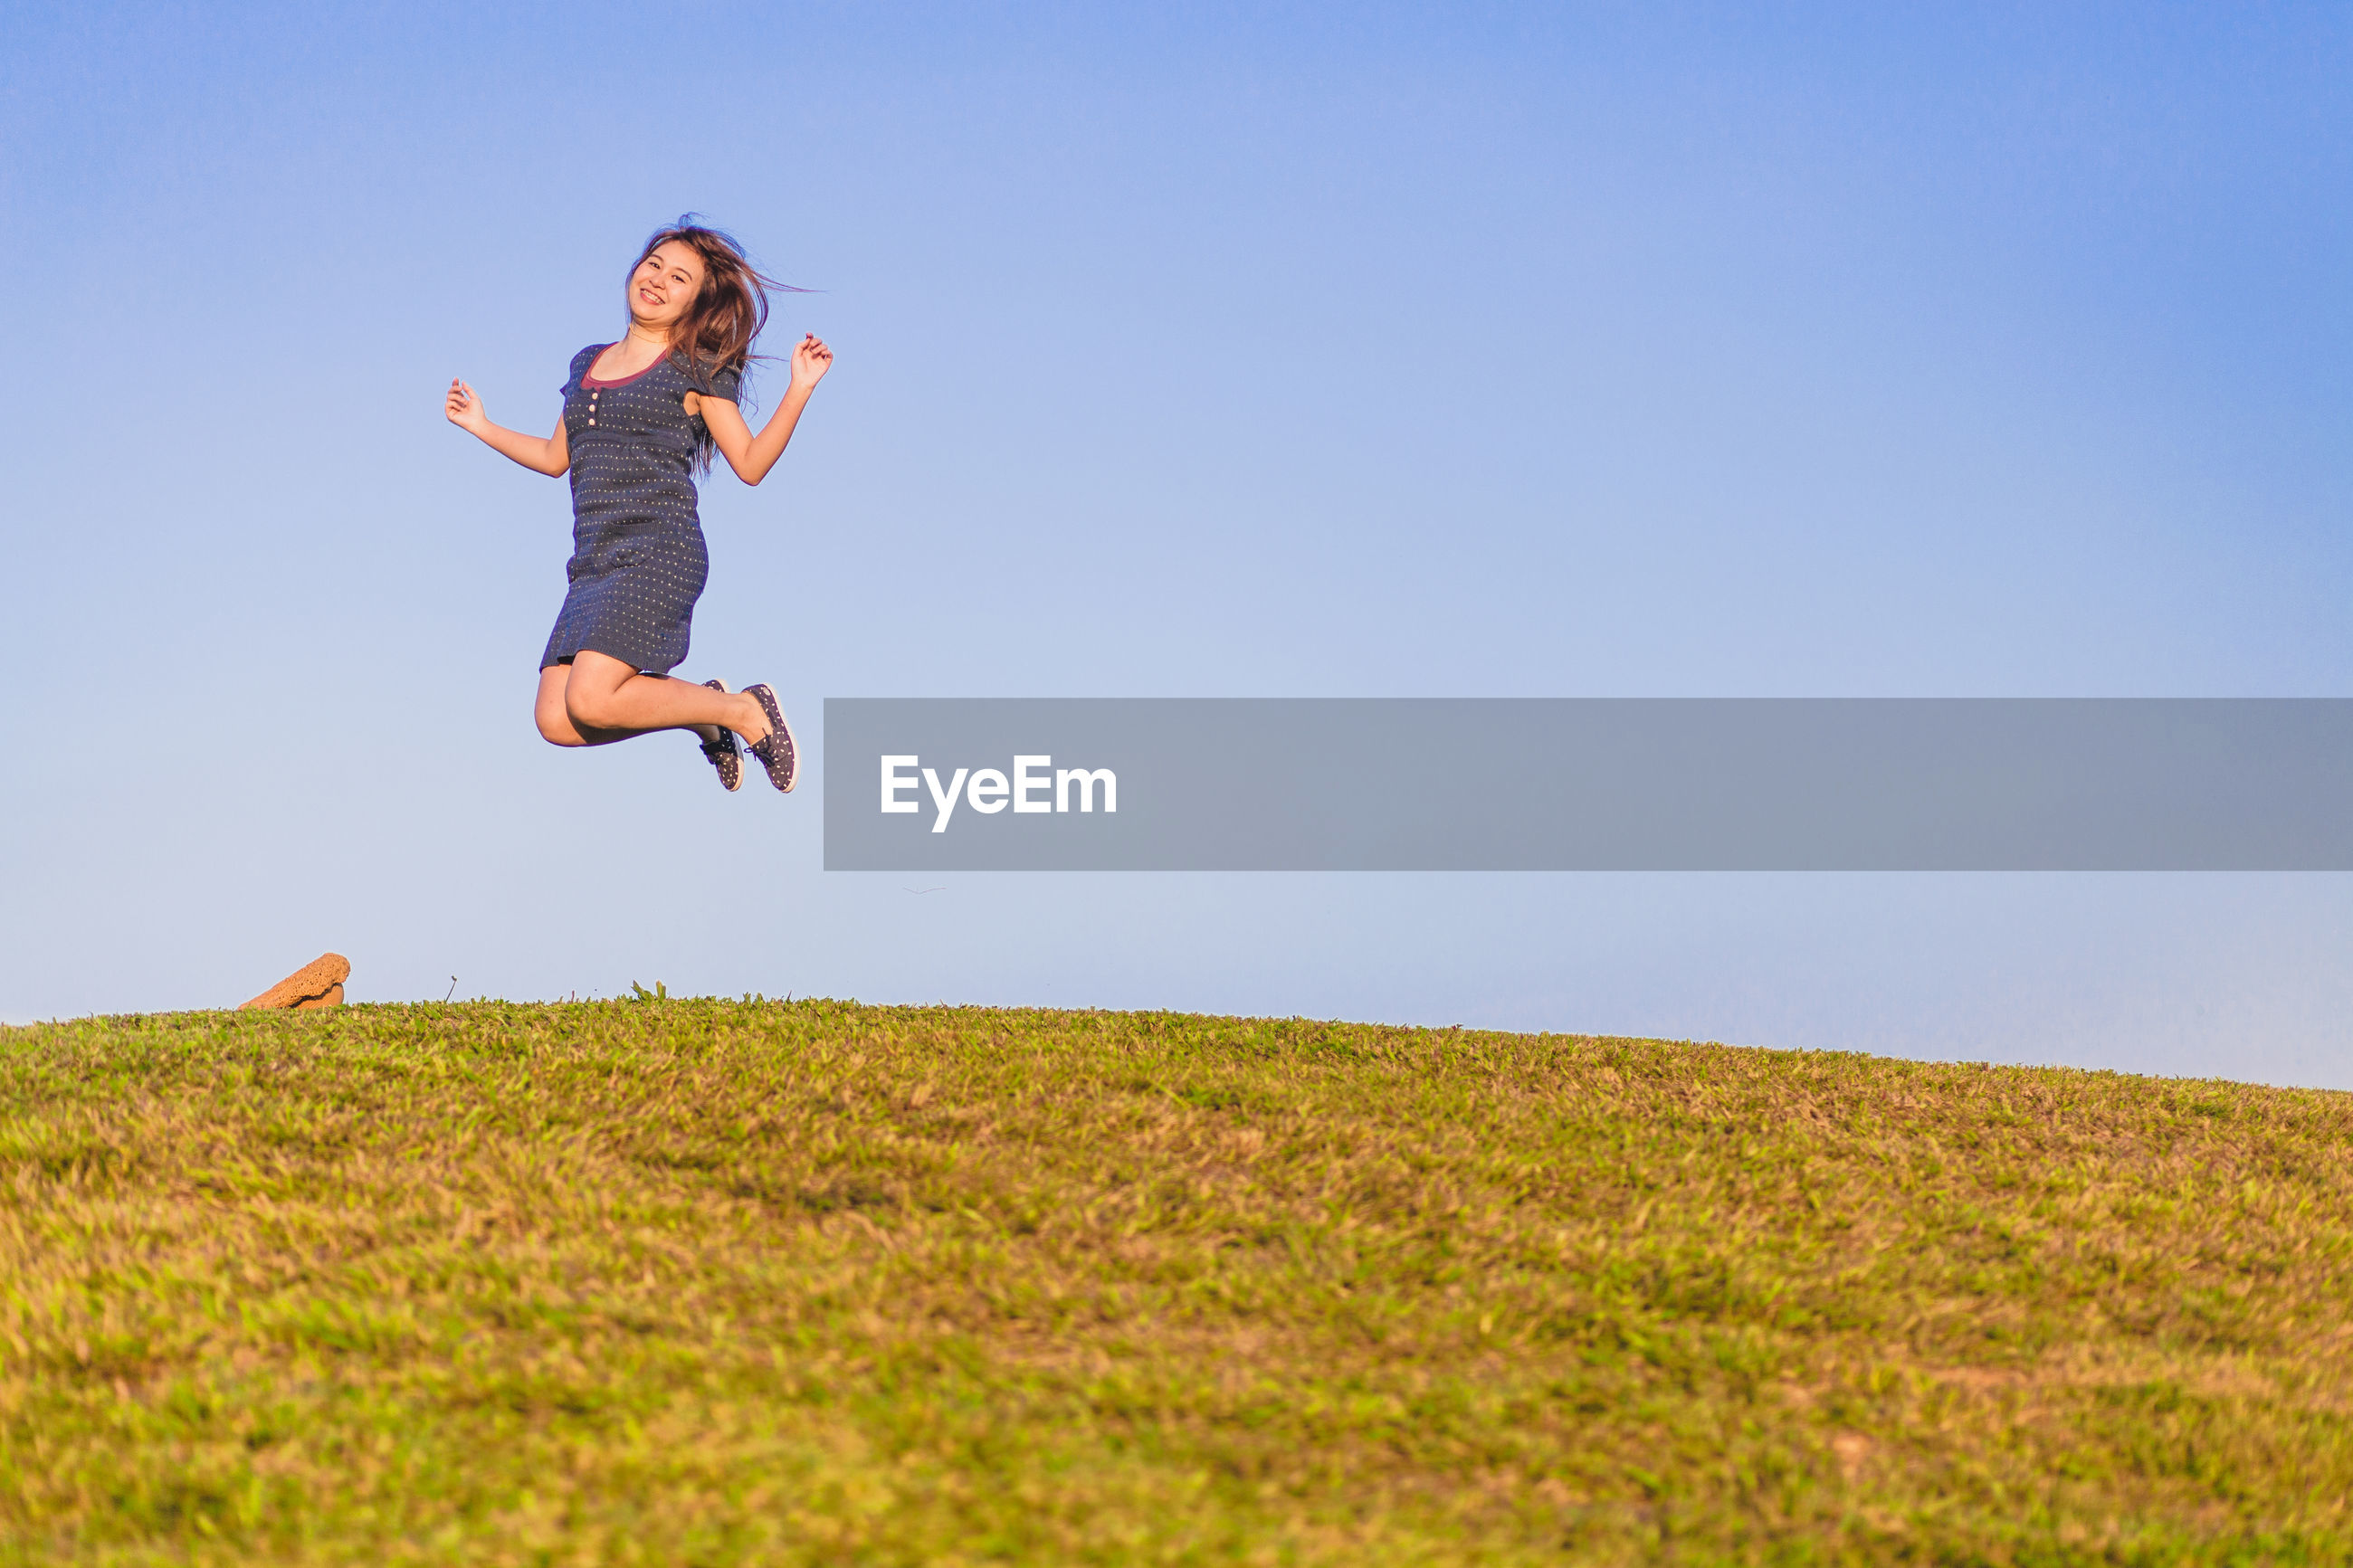 Full length of woman jumping over field against clear sky